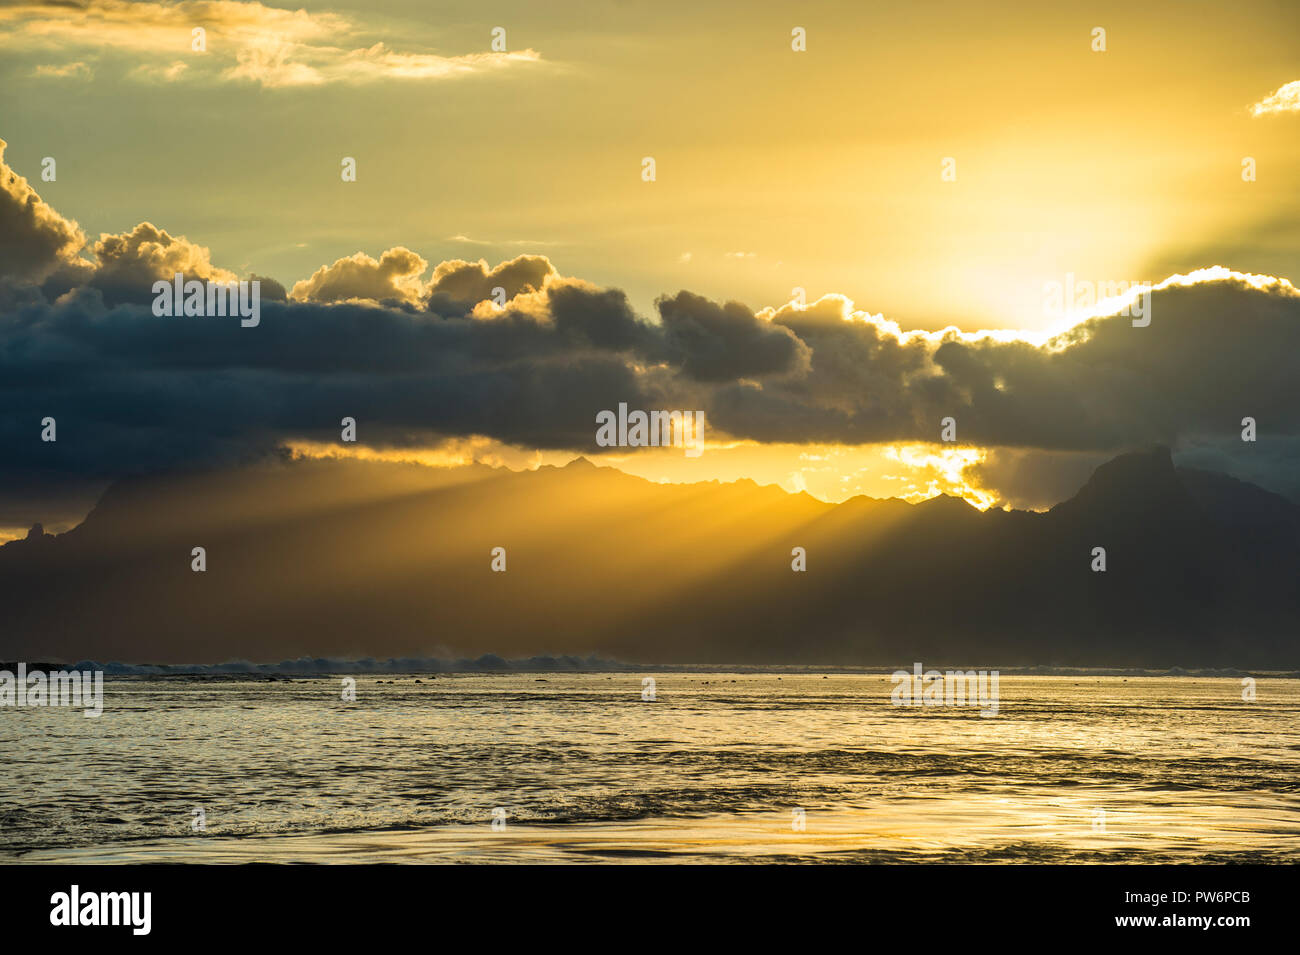 Sun rays breakig through the clouds over Moorea, Papeete, Tahiti - Stock Image